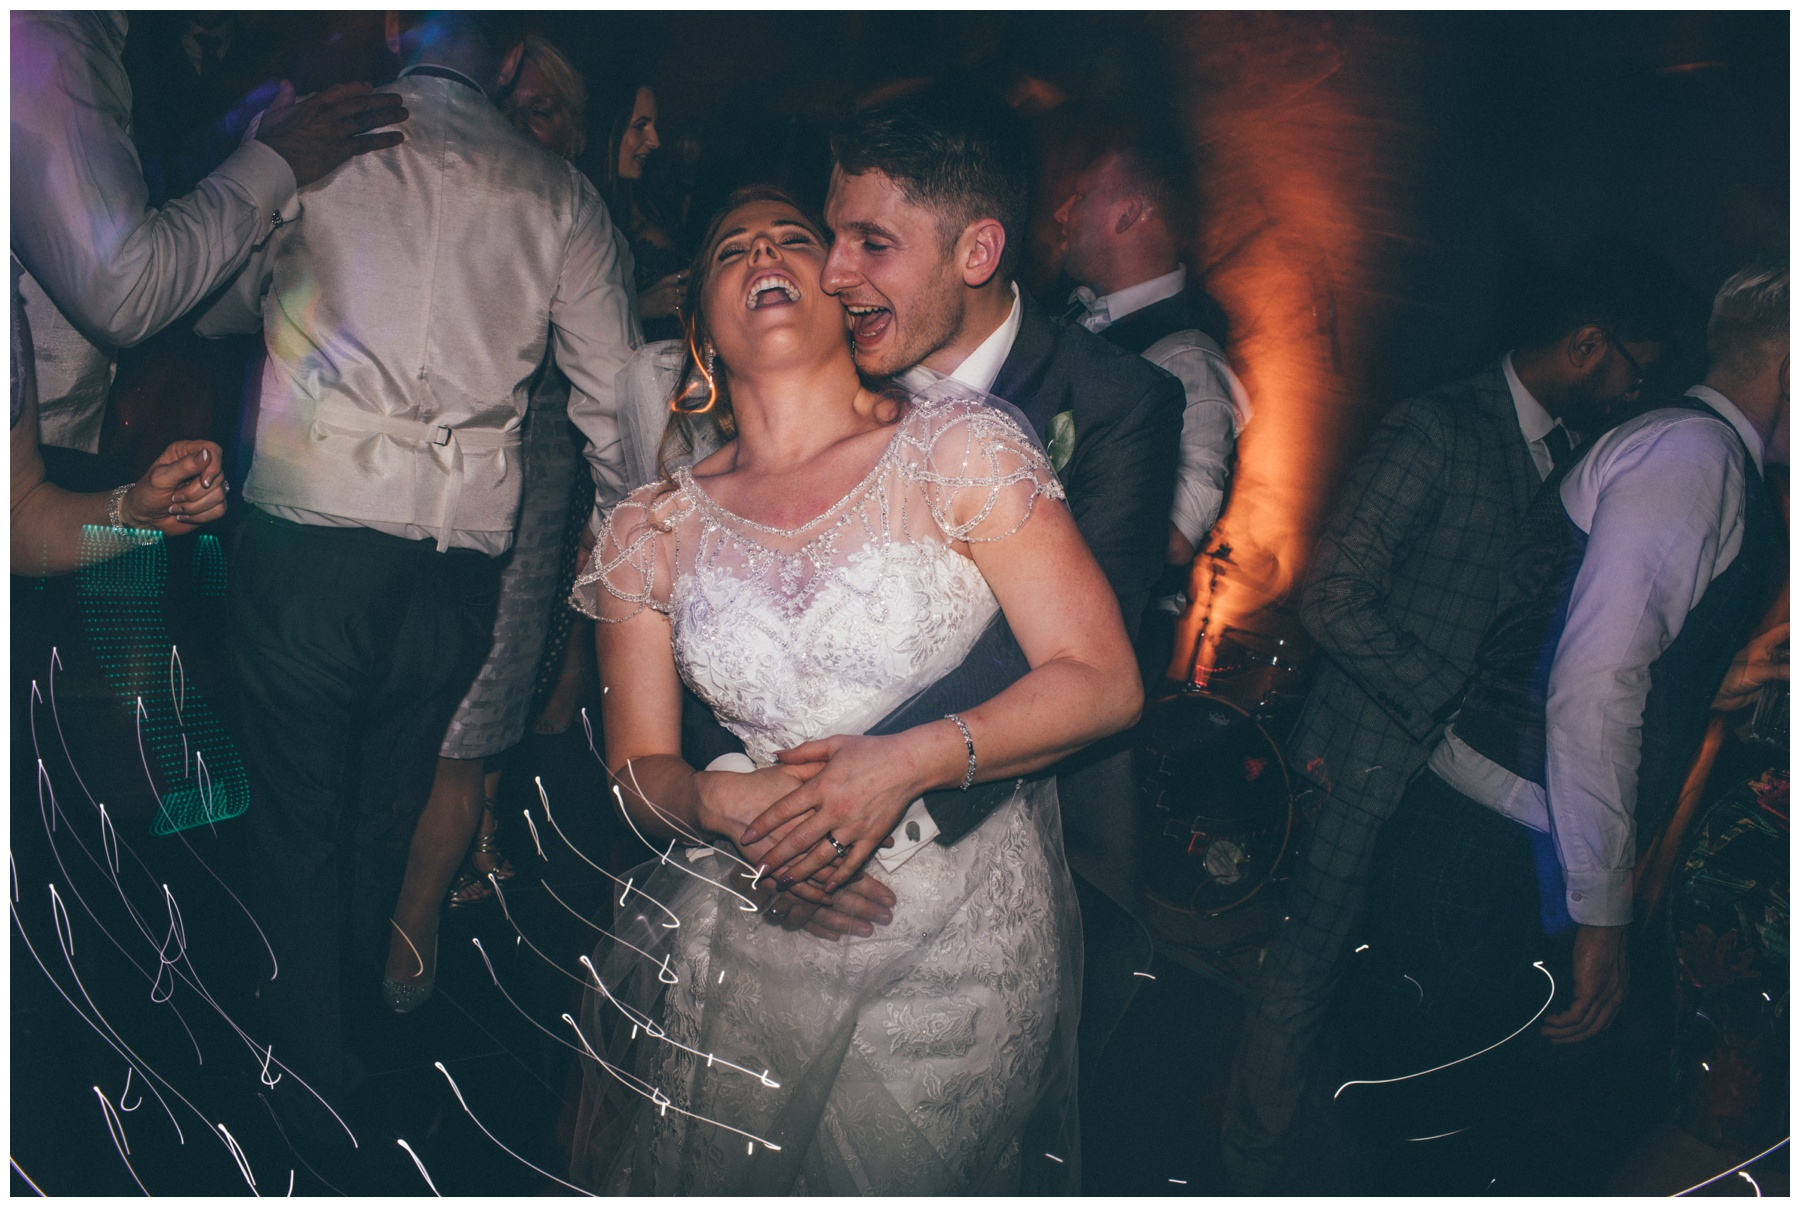 The newlyweds rock the dance floor at Peckforton Castle in Cheshire.